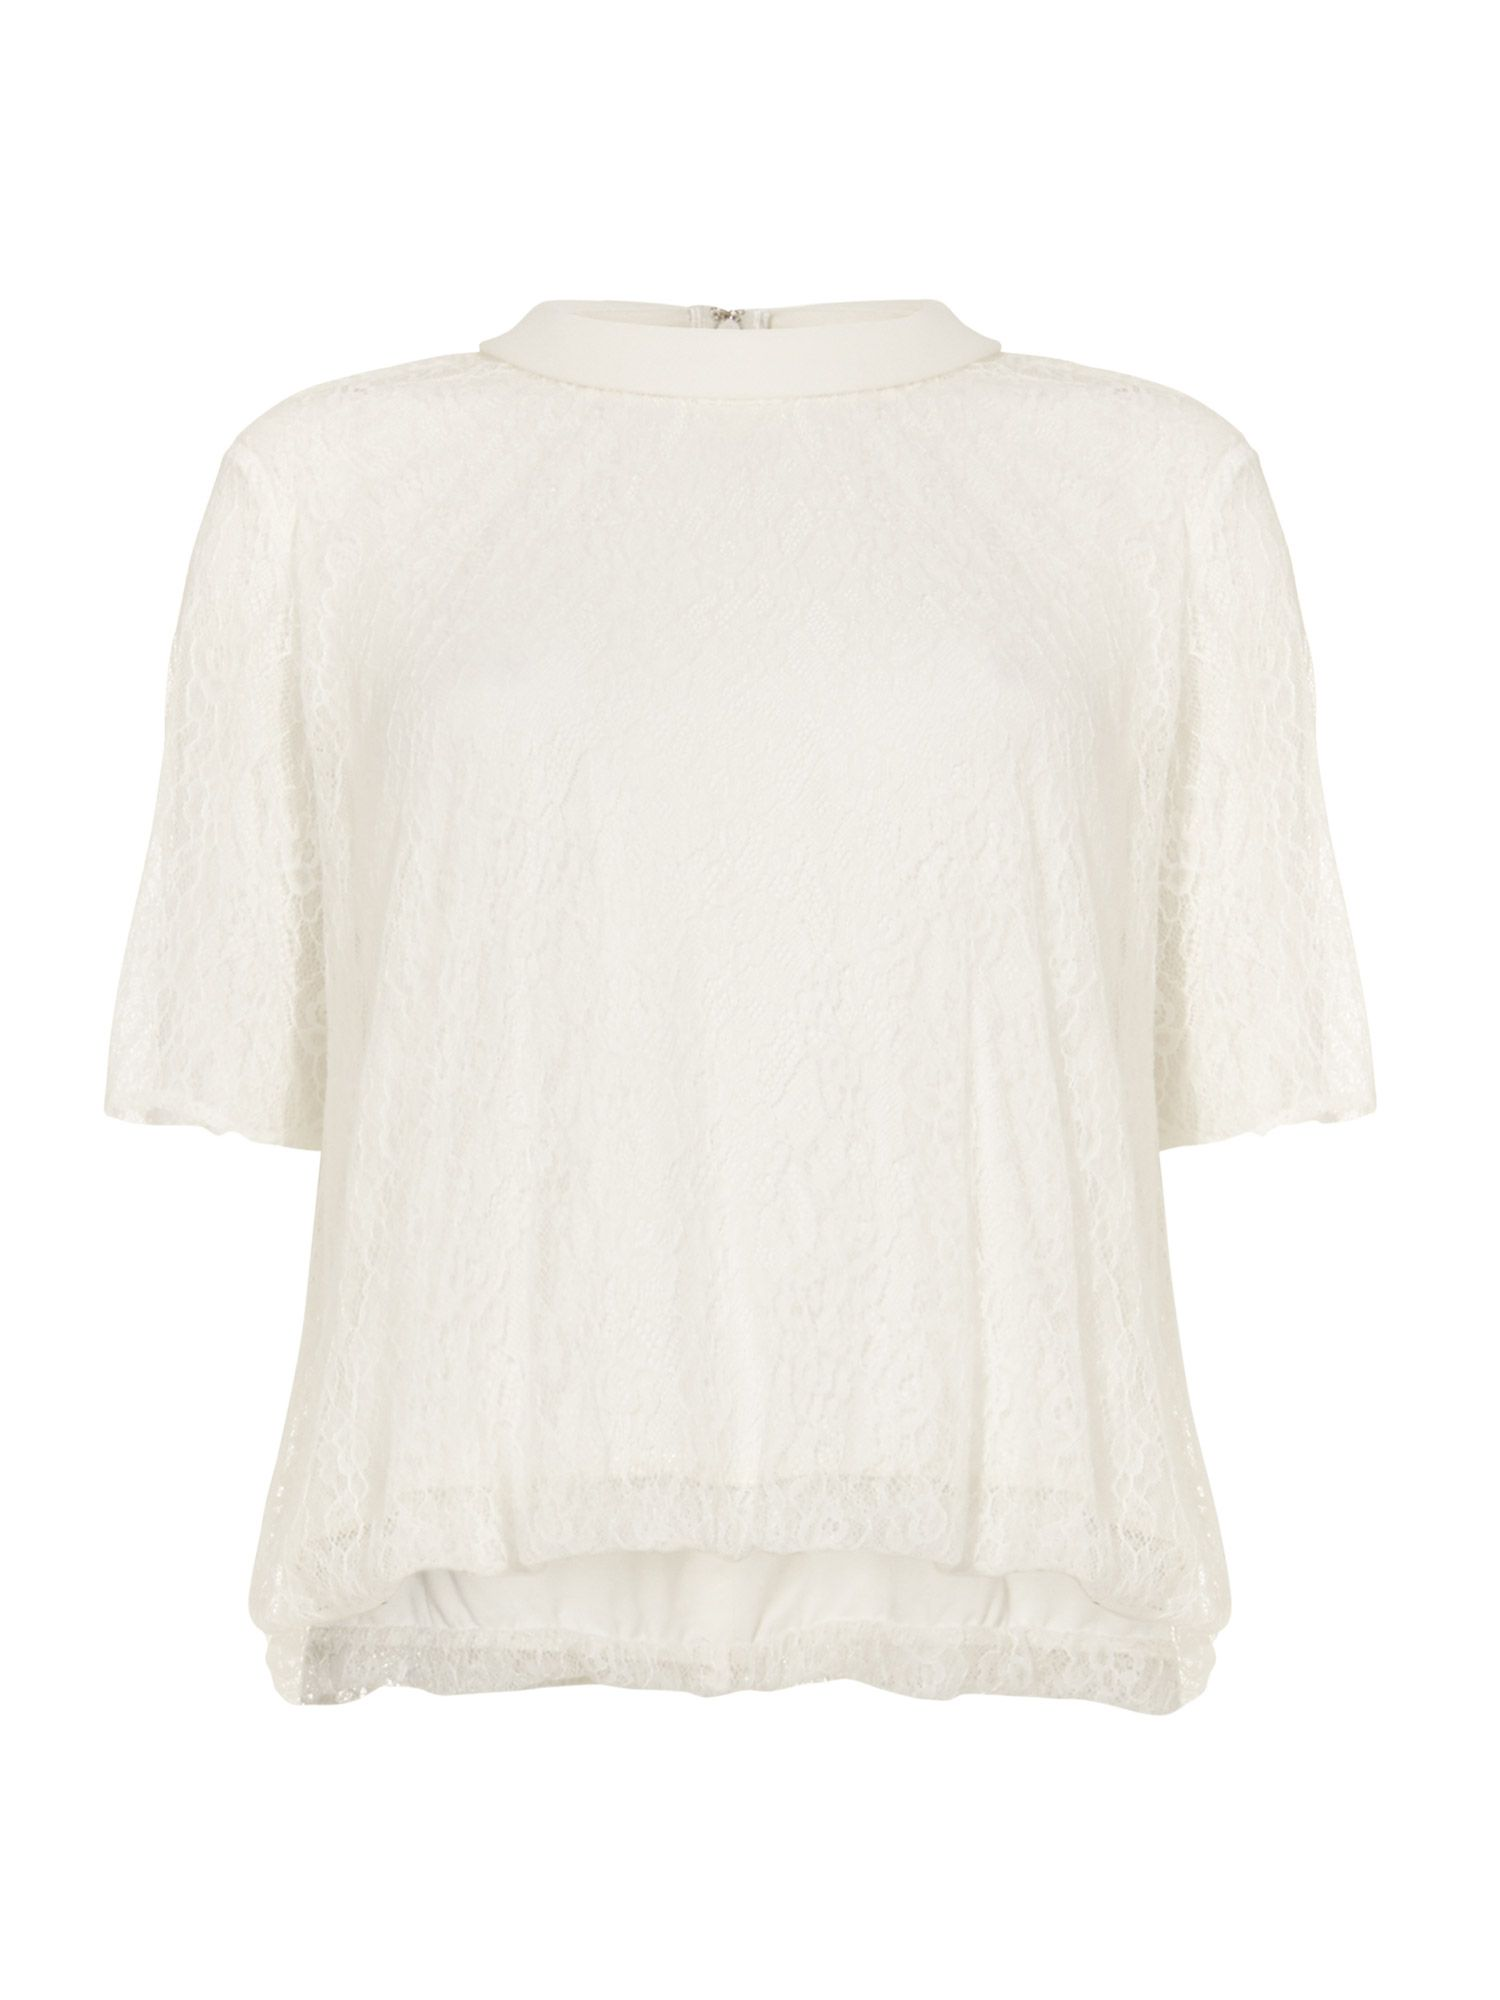 Damsel in a Dress Sensu Pleat Blouse, Cream